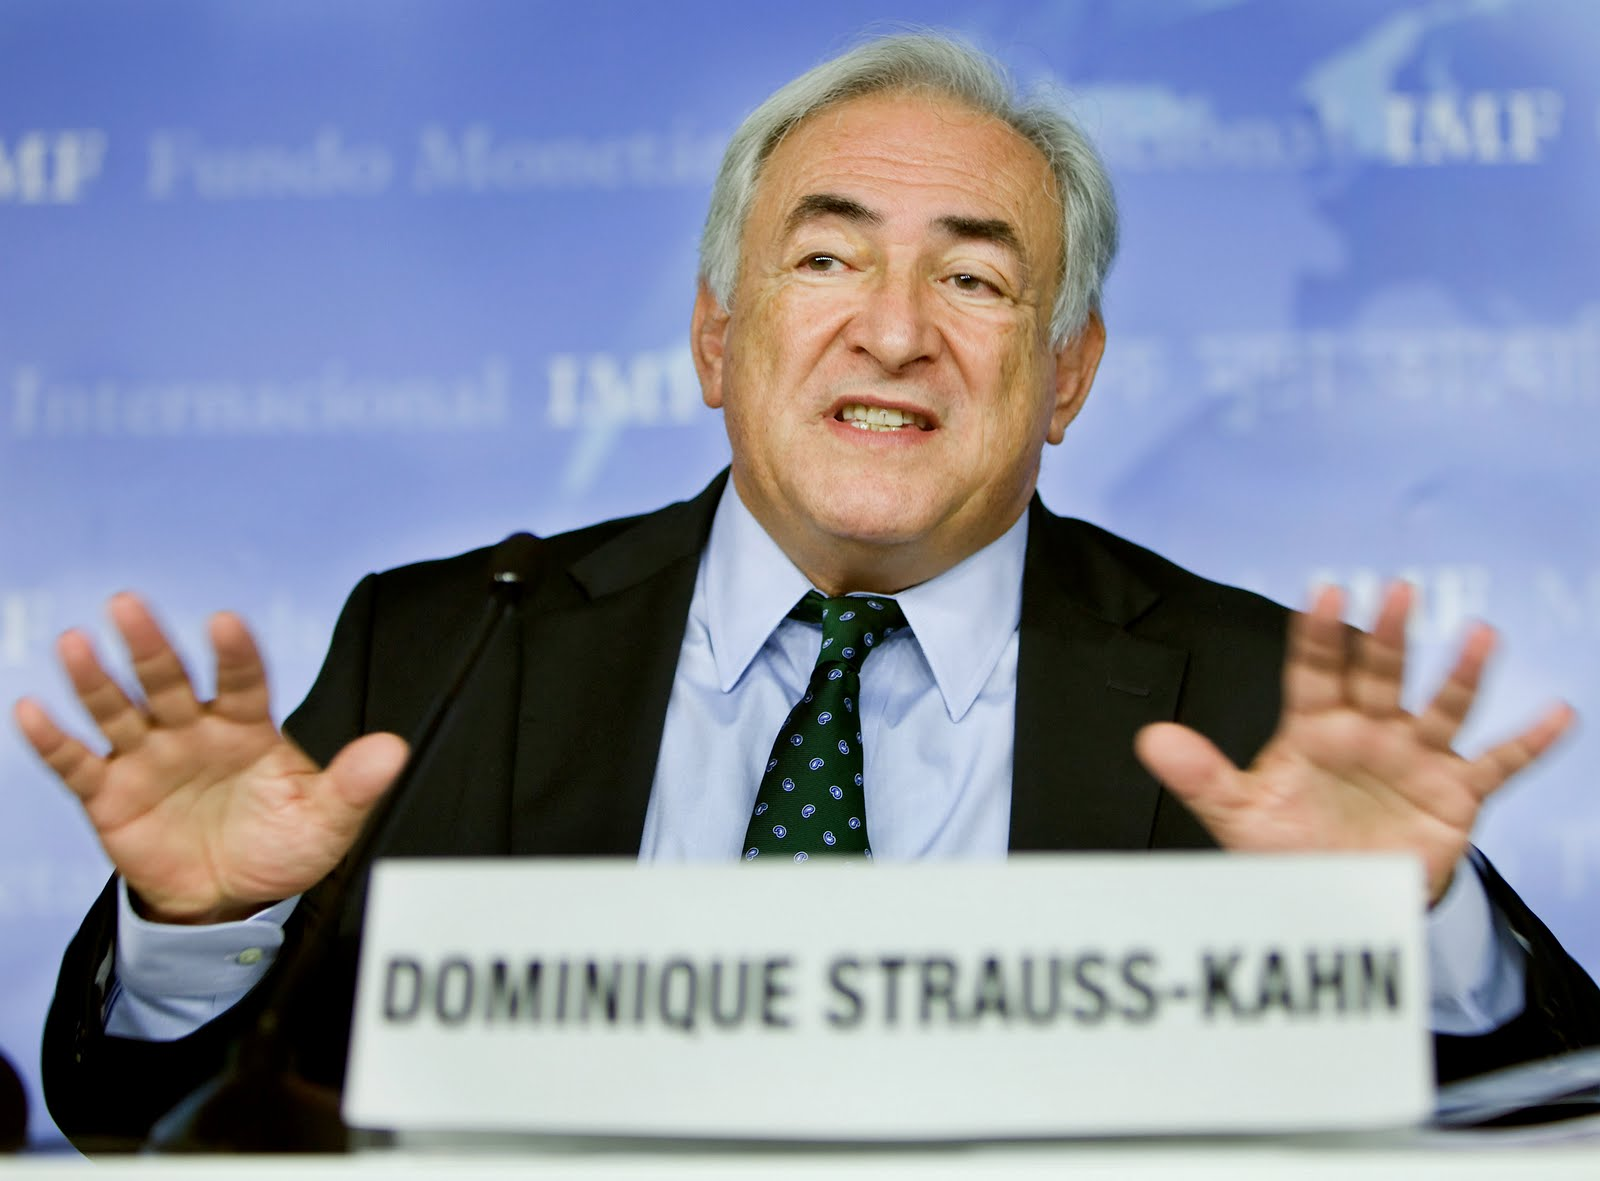 Dominique Strauss-Kahn, IMF director: into the hands of a womanizer! 113DSKpresser_1